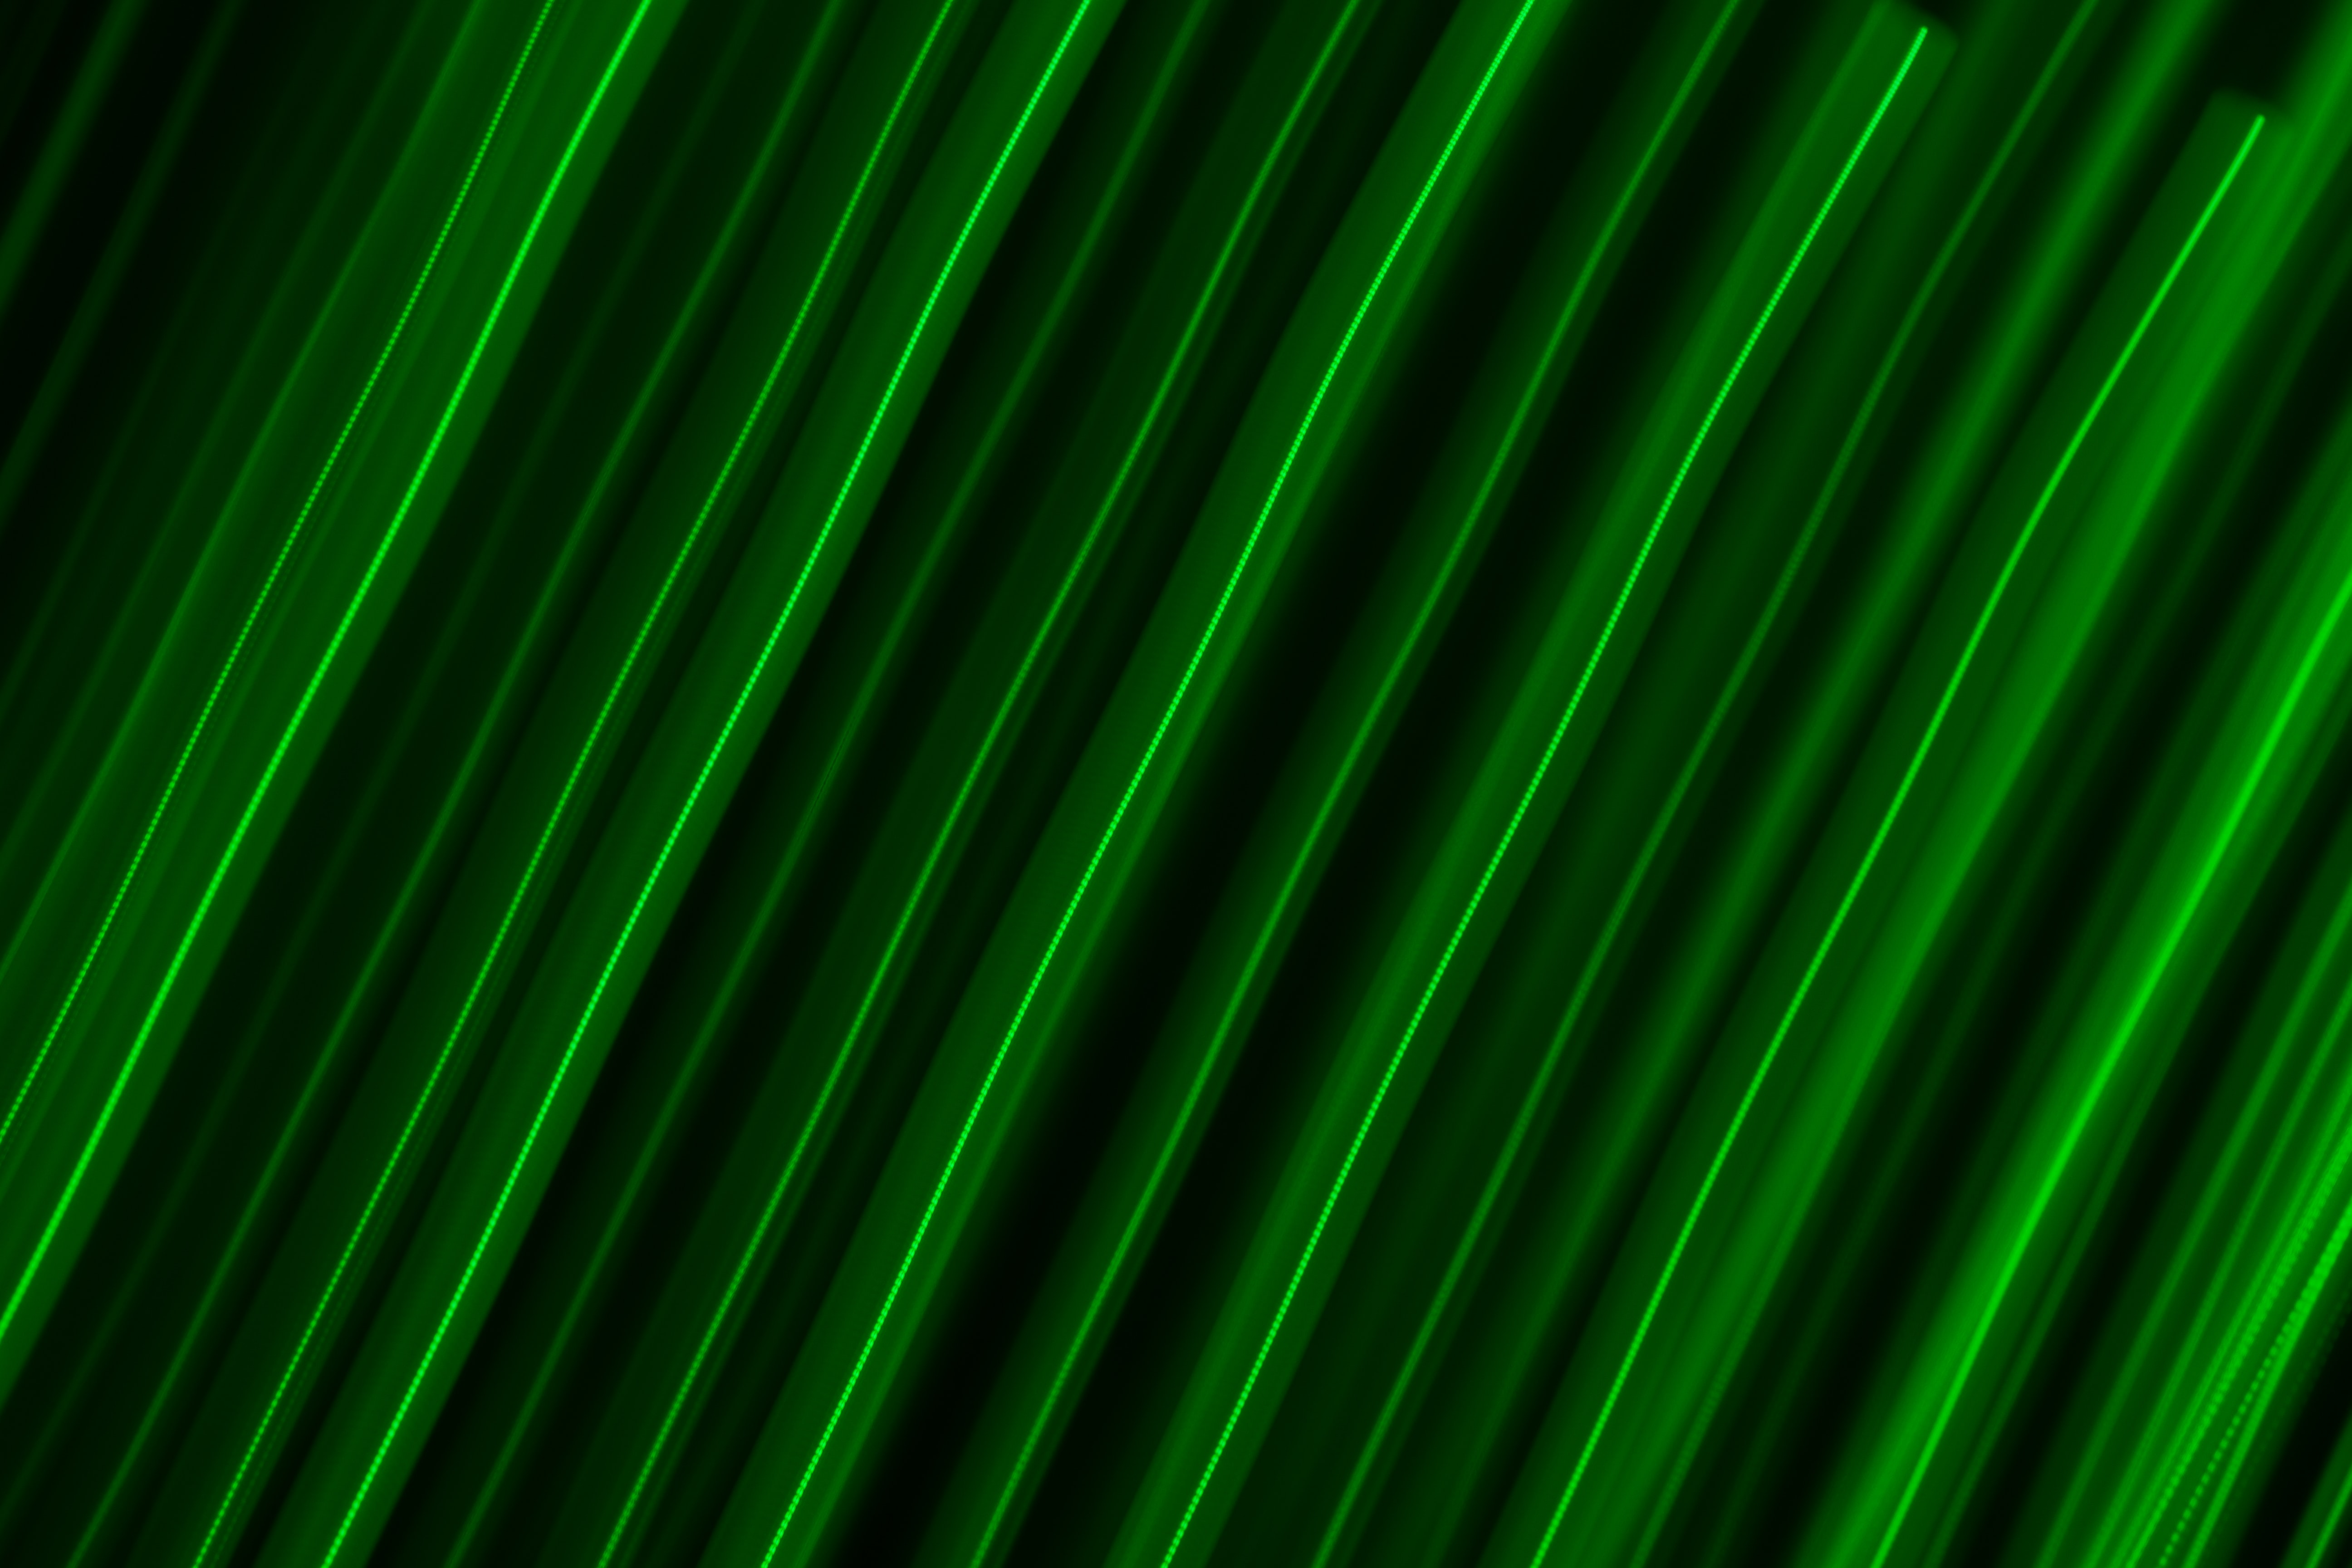 89343 download wallpaper Abstract, Stripes, Streaks, Lines, Neon, Diagonal screensavers and pictures for free